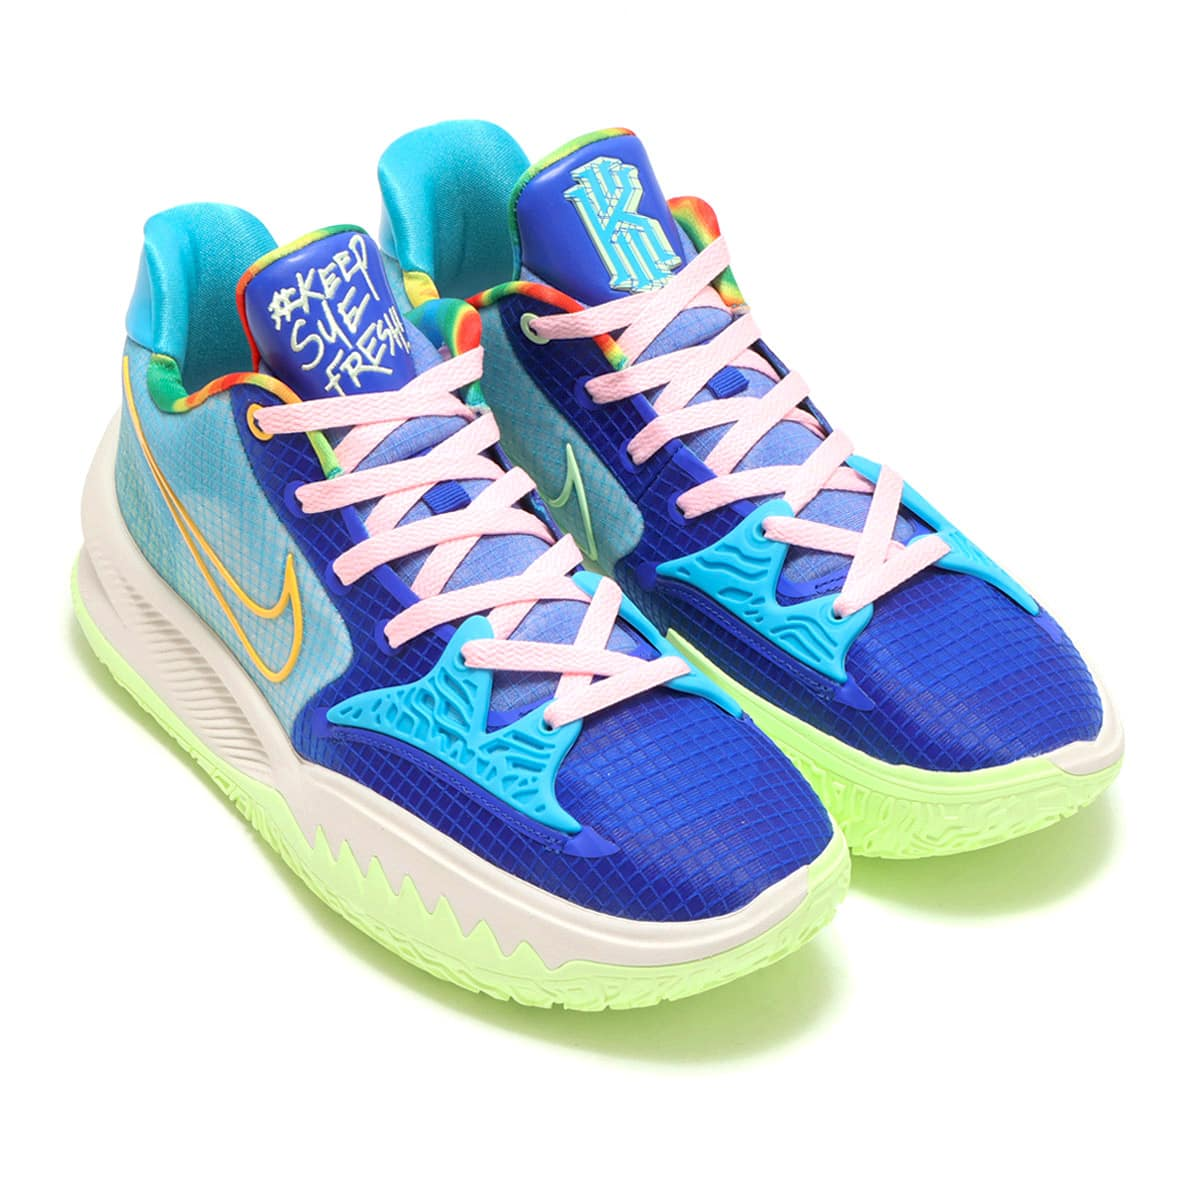 NIKE KYRIE LOW 4 EP RACER BLUE/CHLORINE BLUE-ARCTIC PUNCH 21FA-I_photo_large